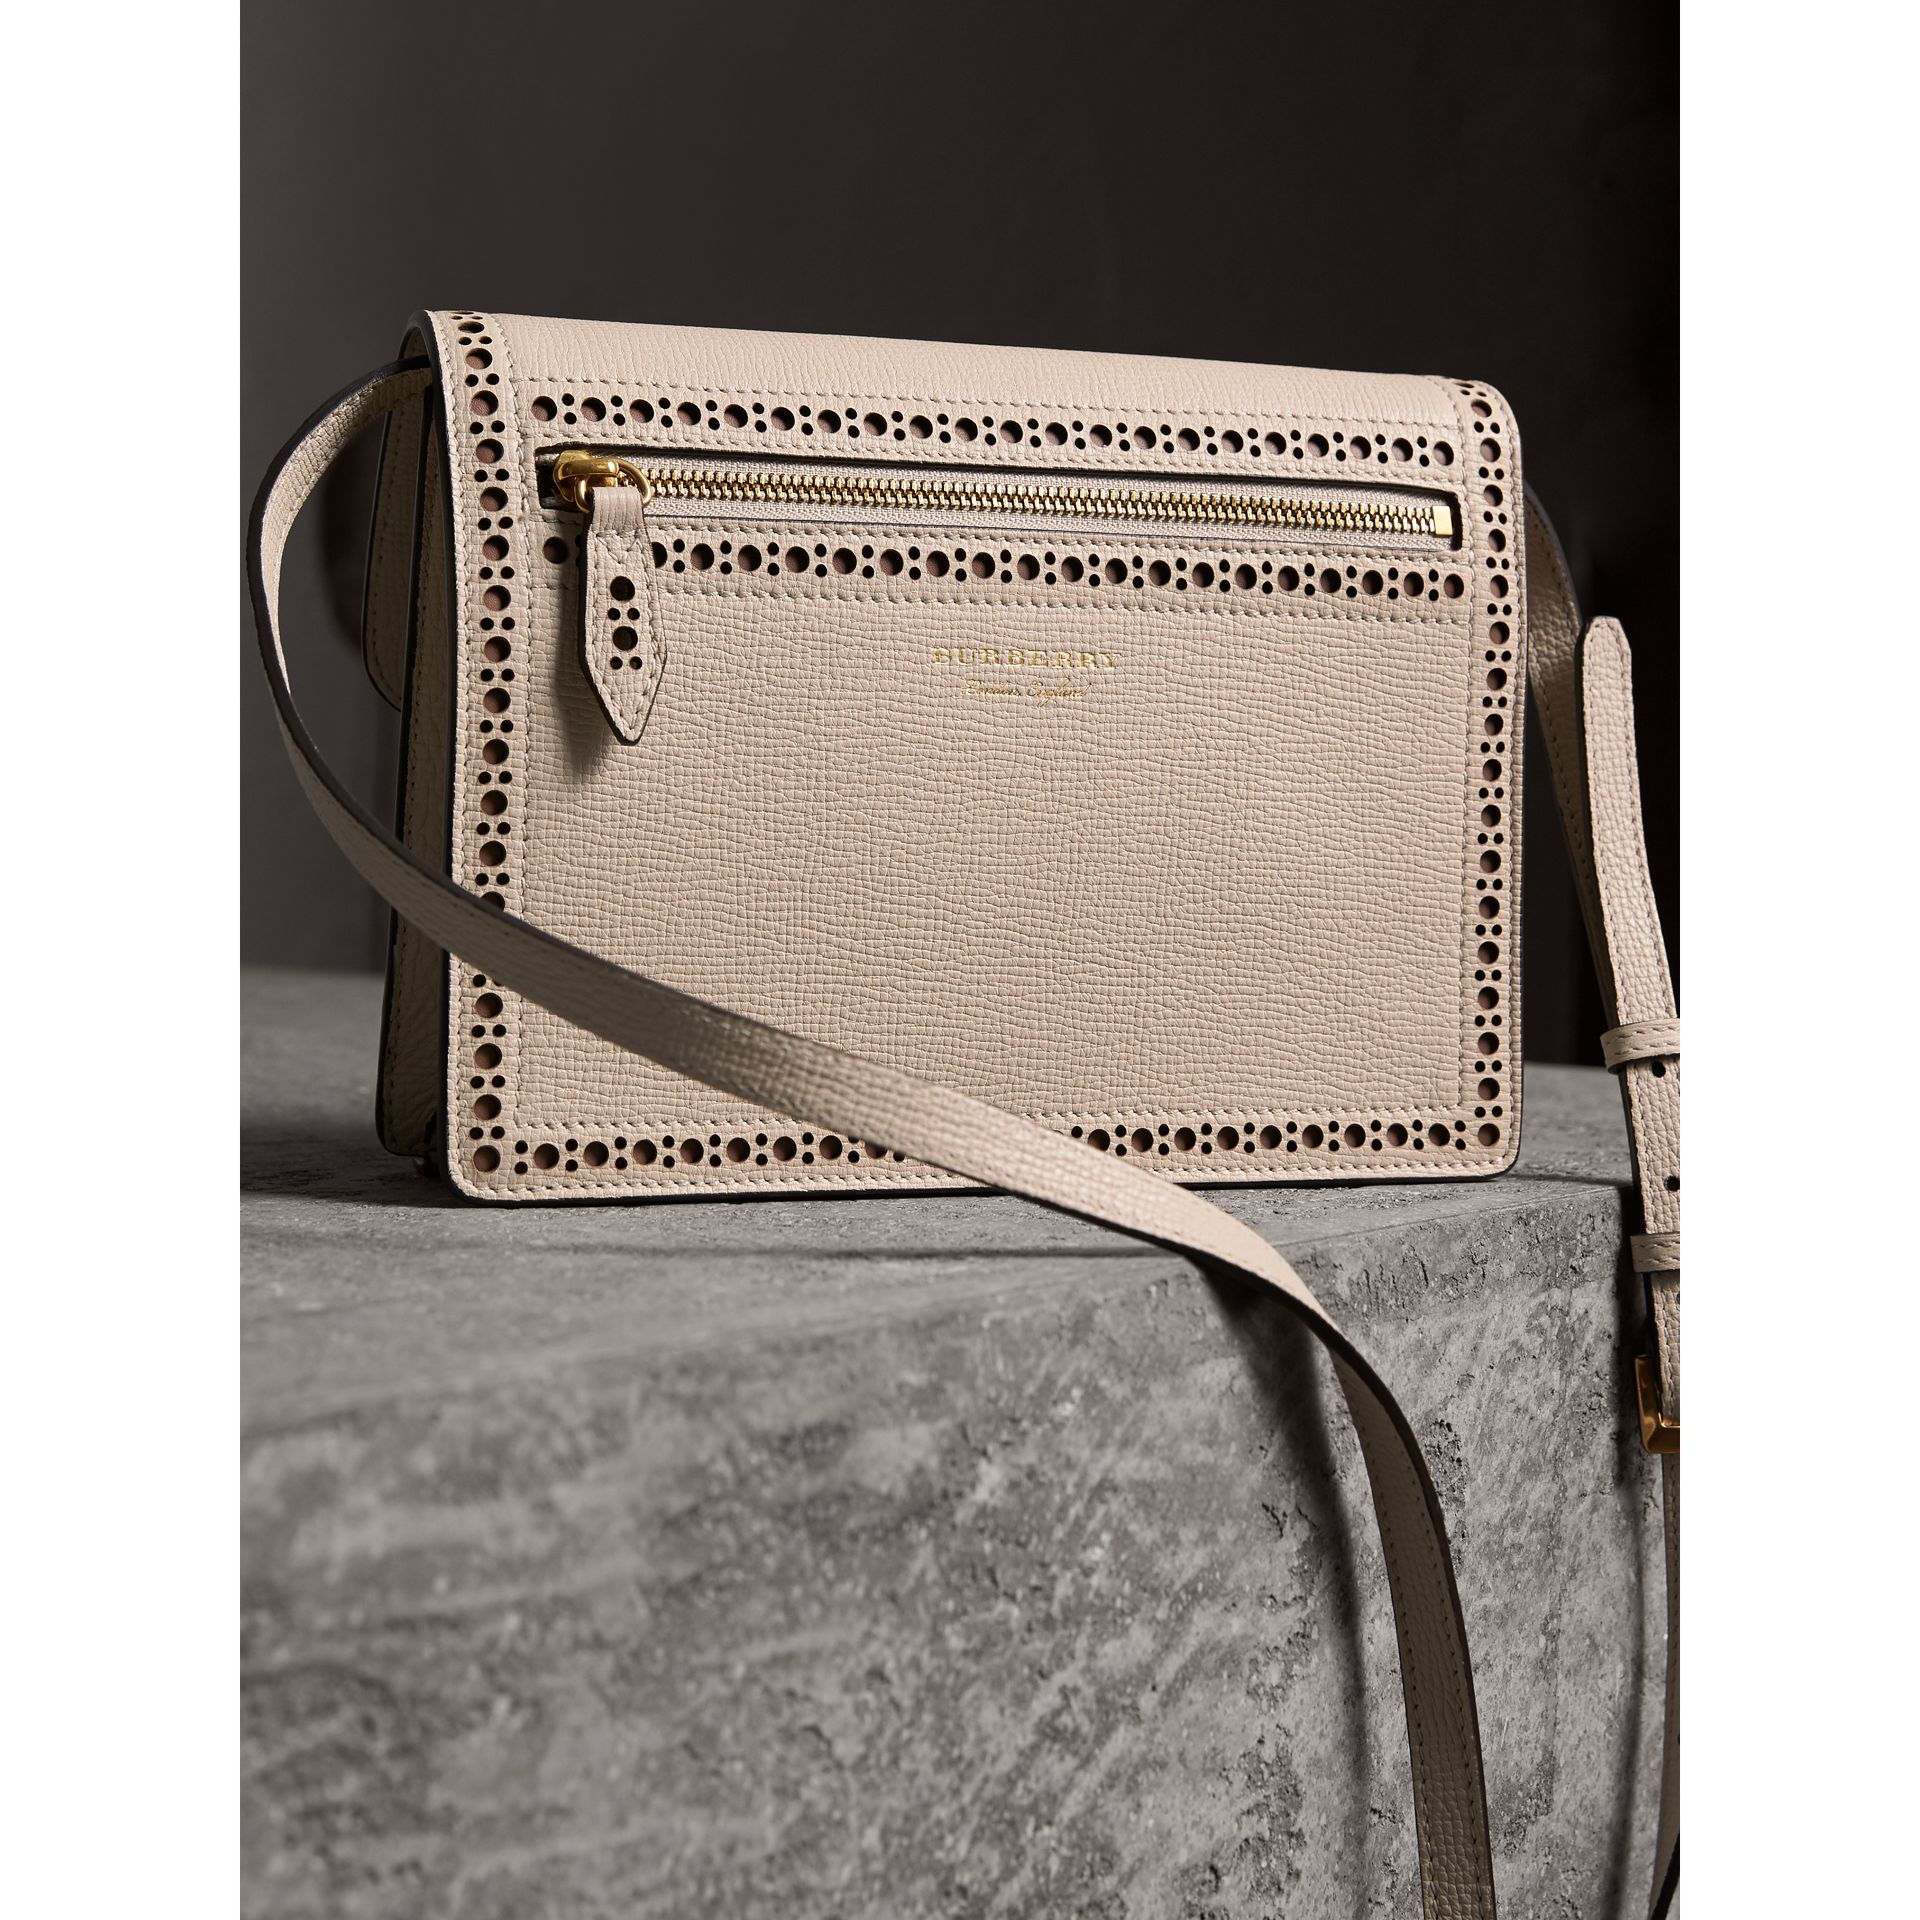 Brogue and Fringe Detail Leather Crossbody Bag in Limestone - Women | Burberry - gallery image 4